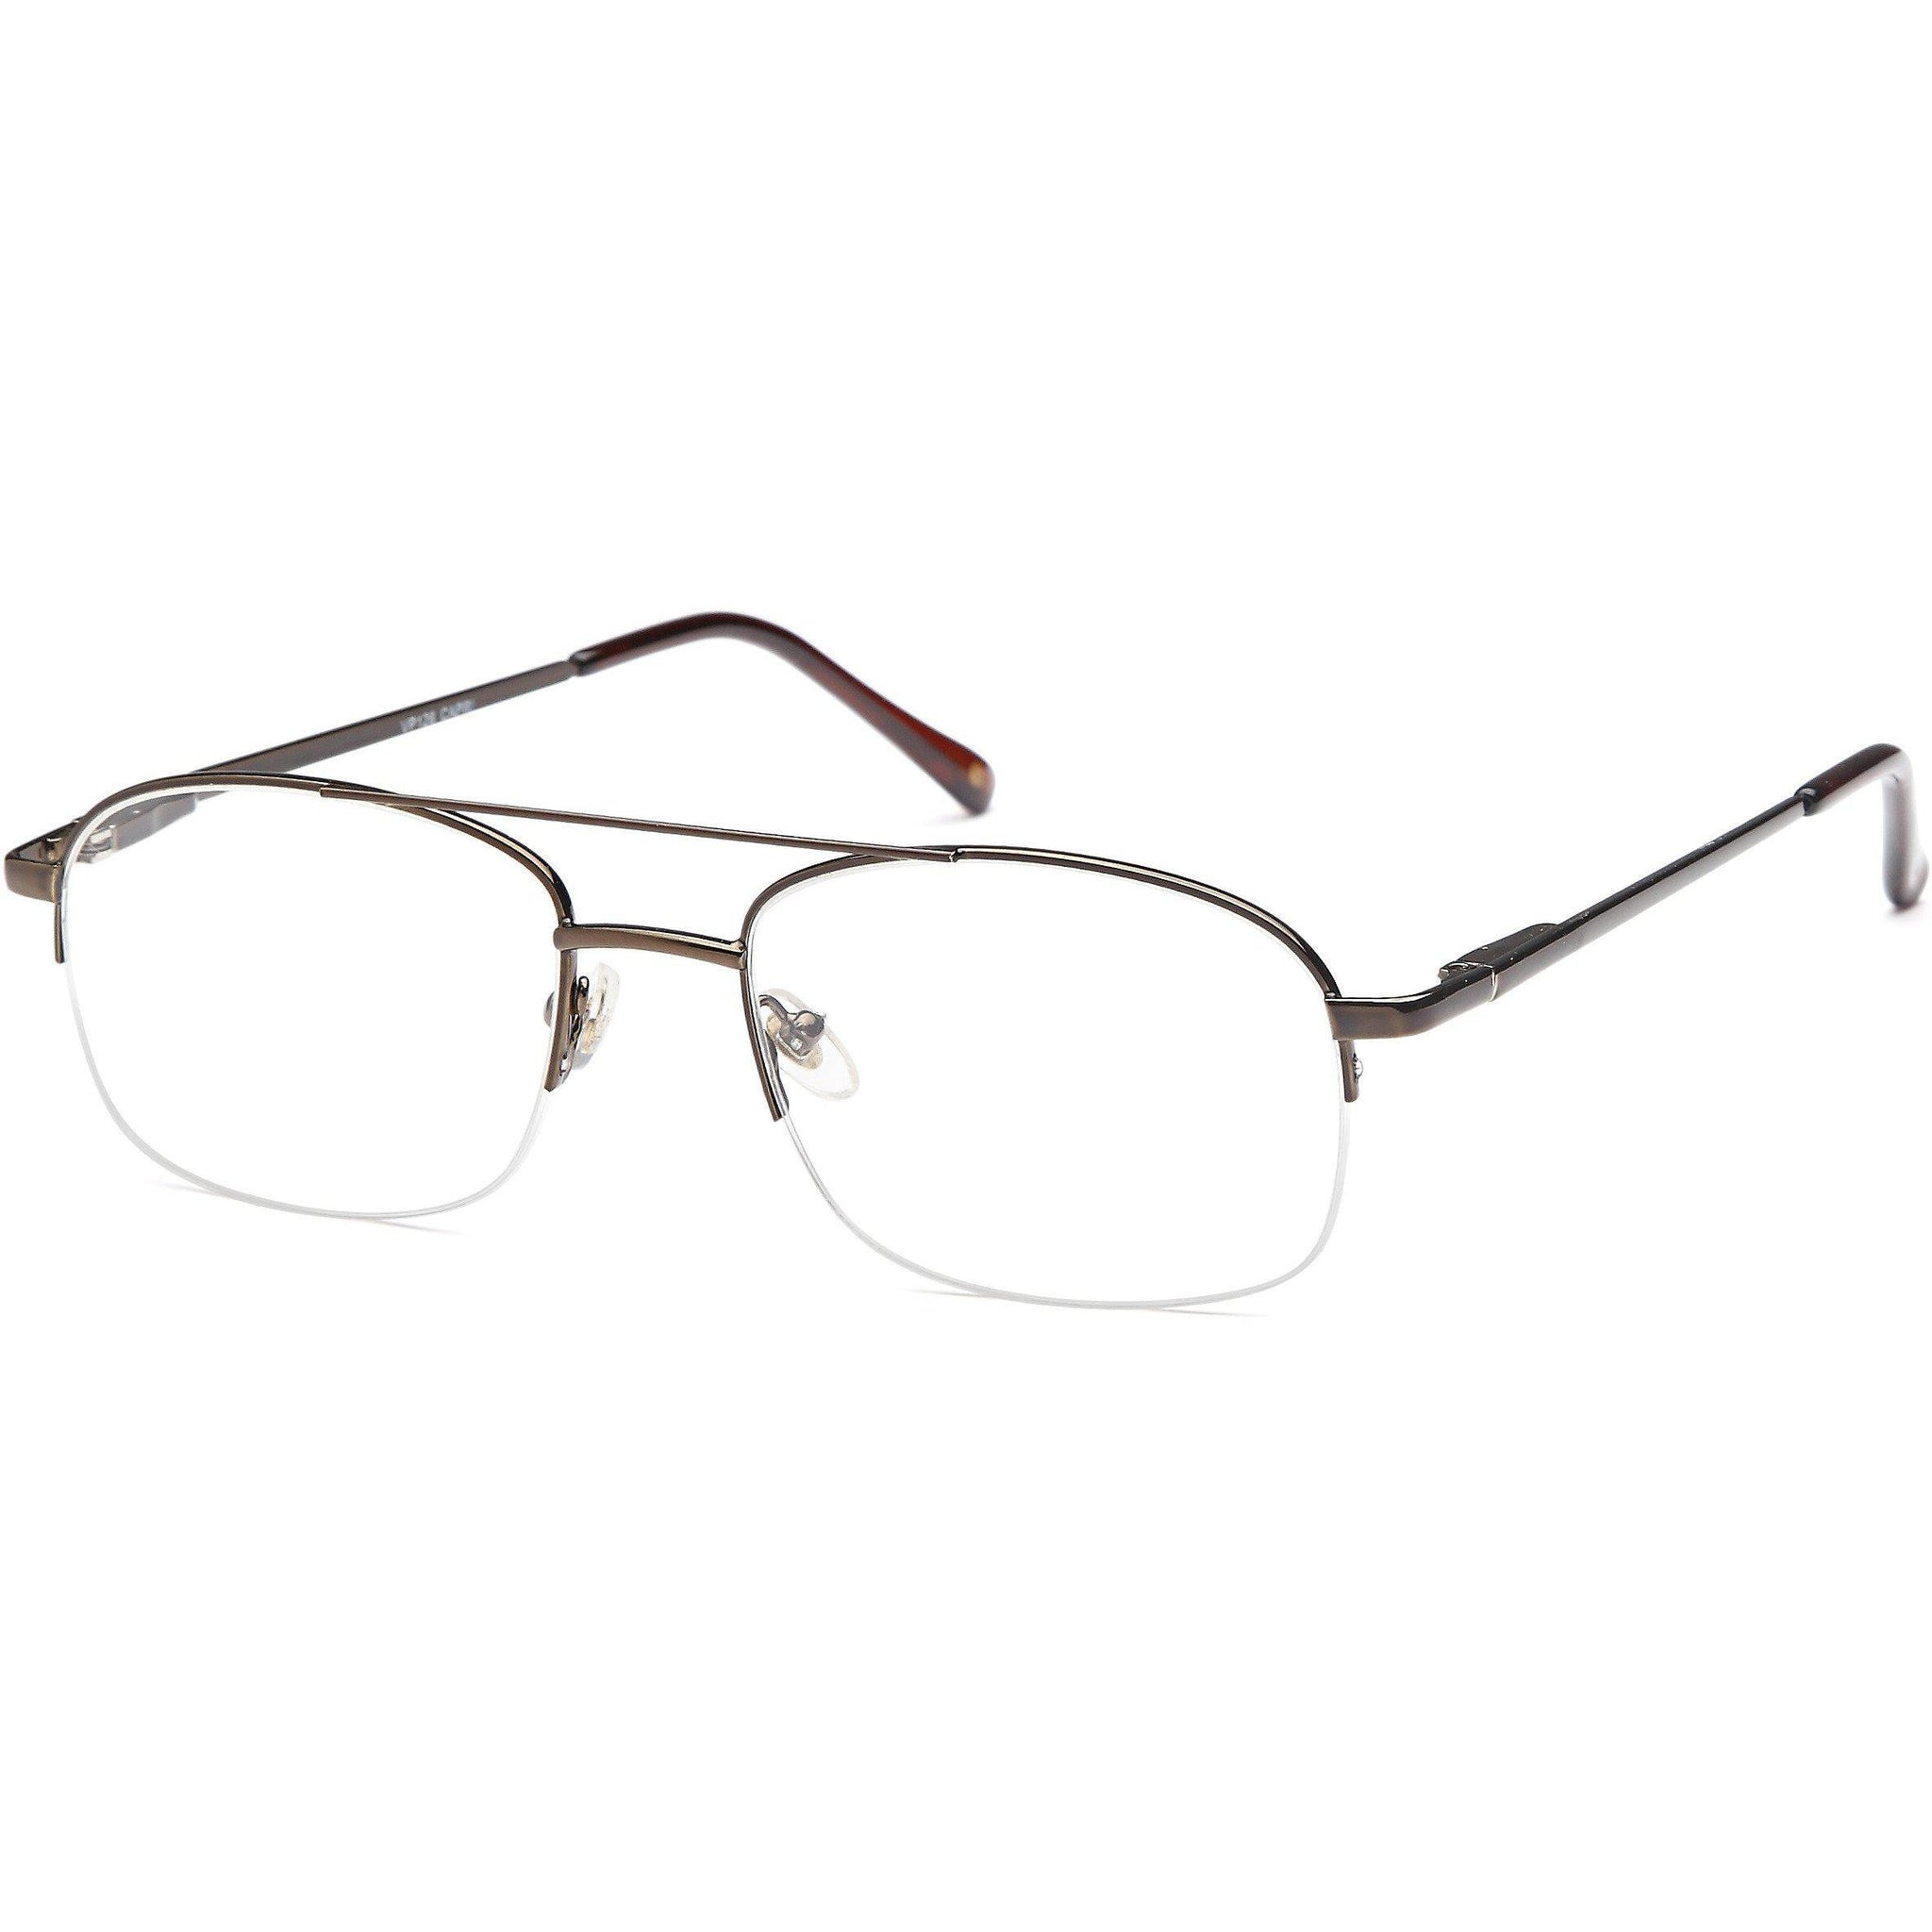 Classics Prescription Glasses VP 126 Frames